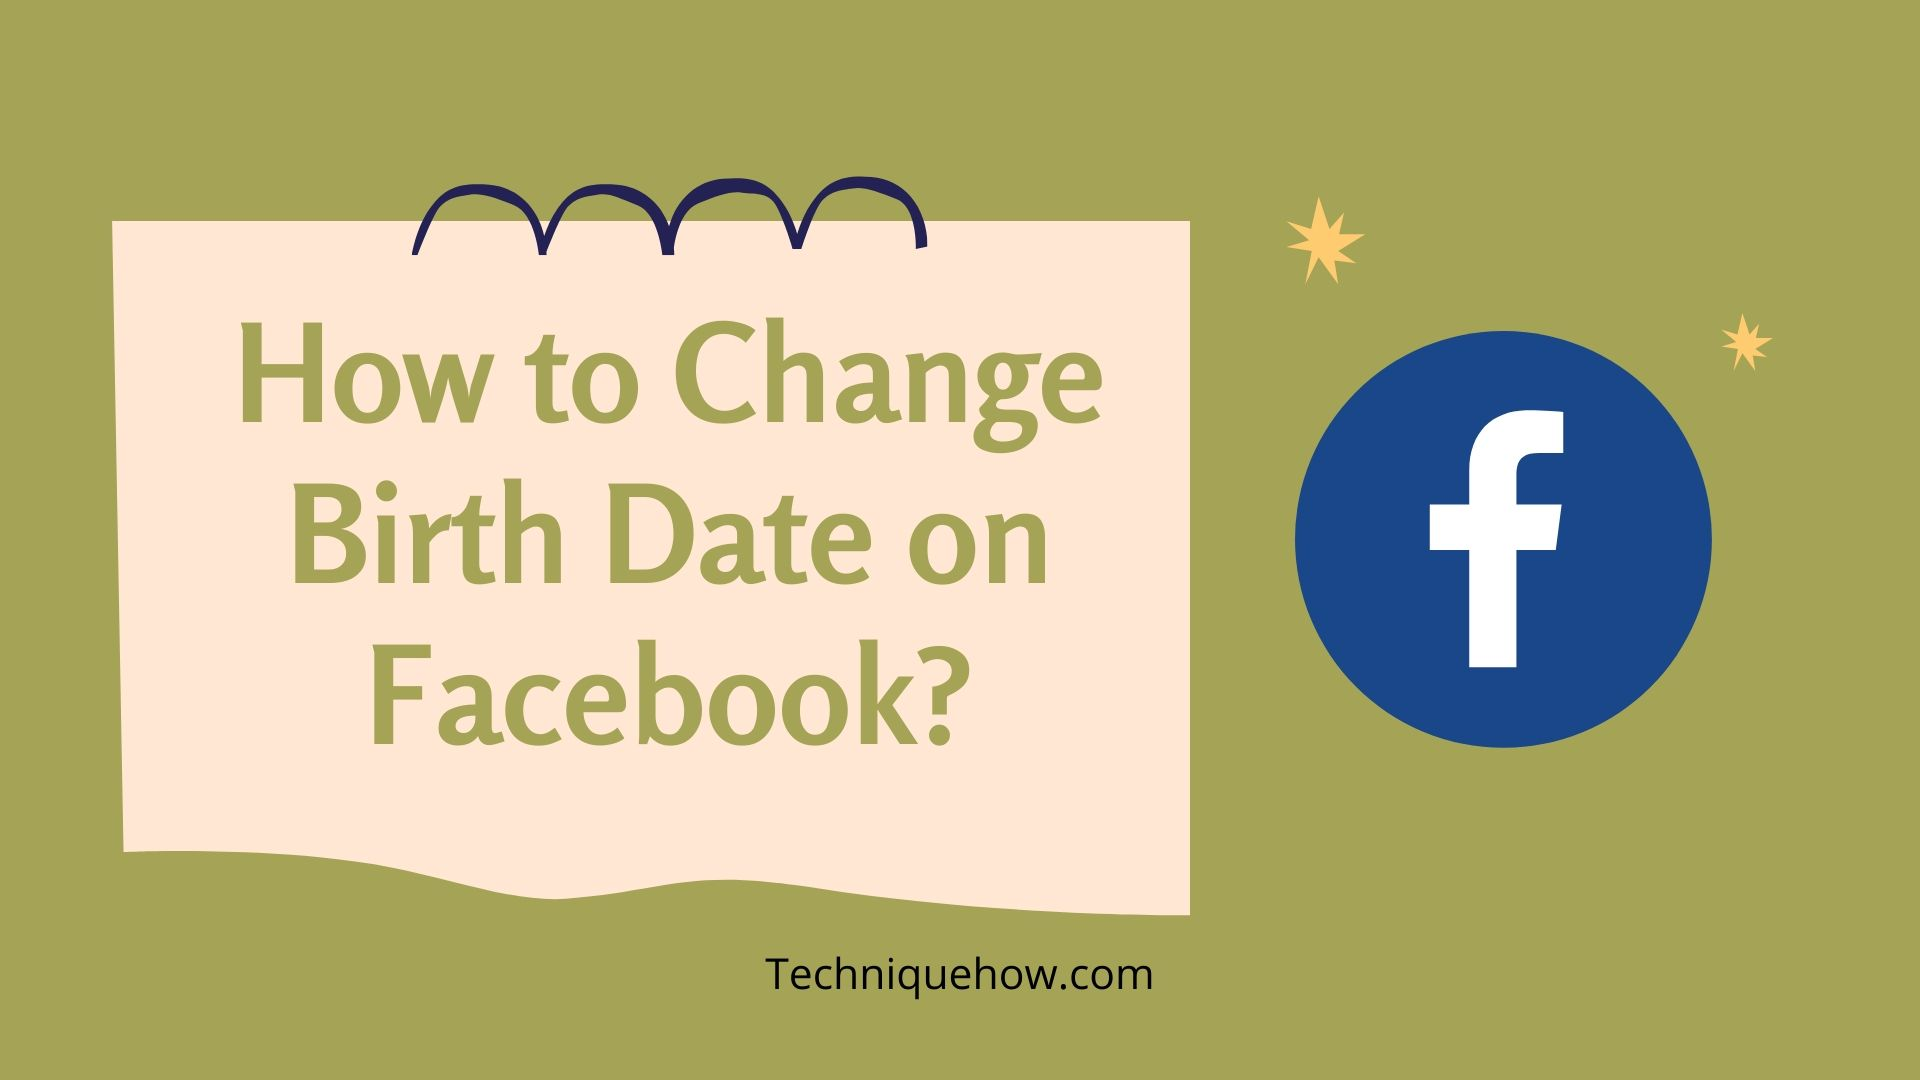 Change Birth Date on Facebook